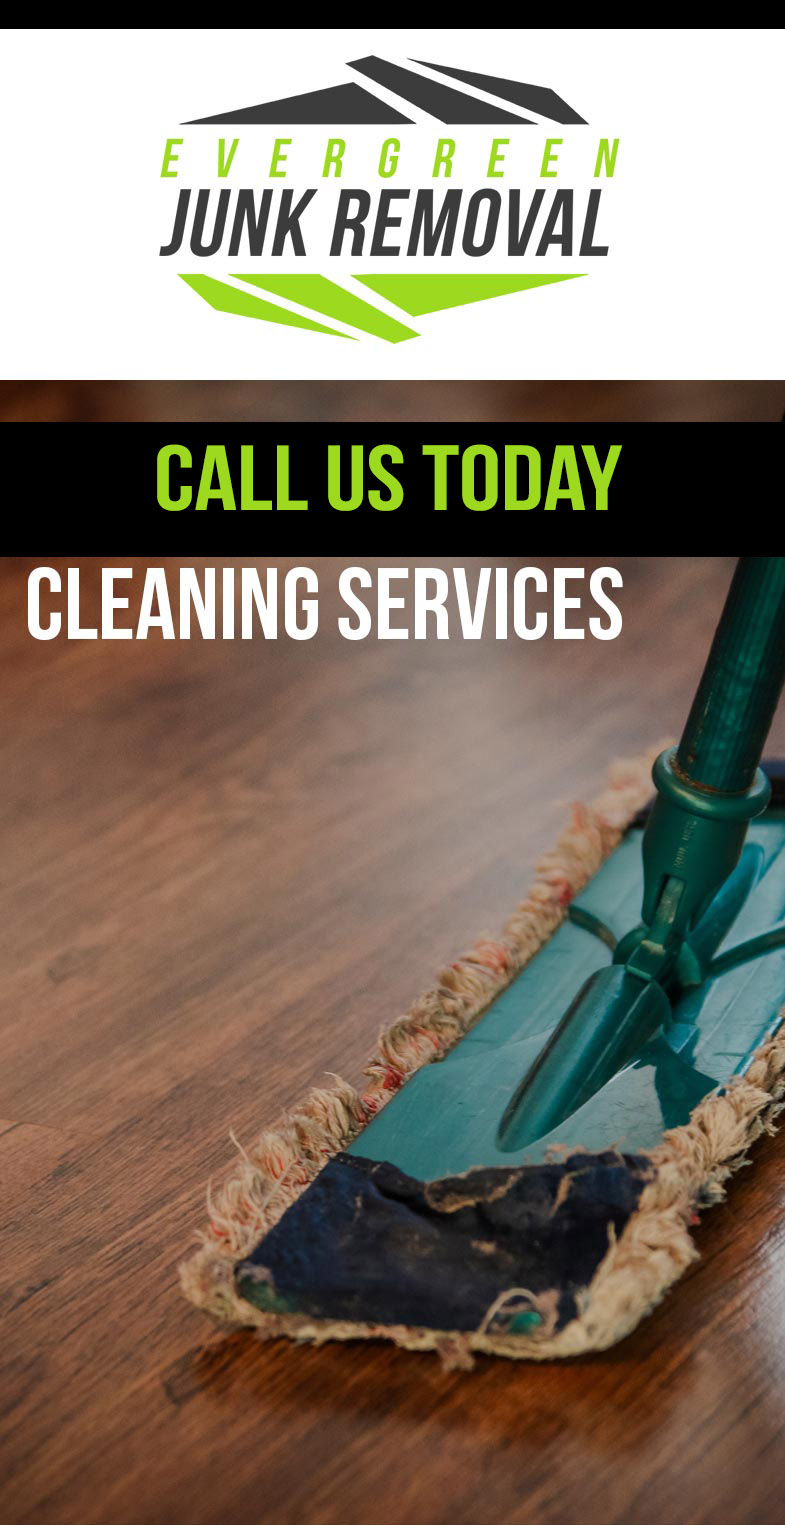 Greenacres Florida Maid Services